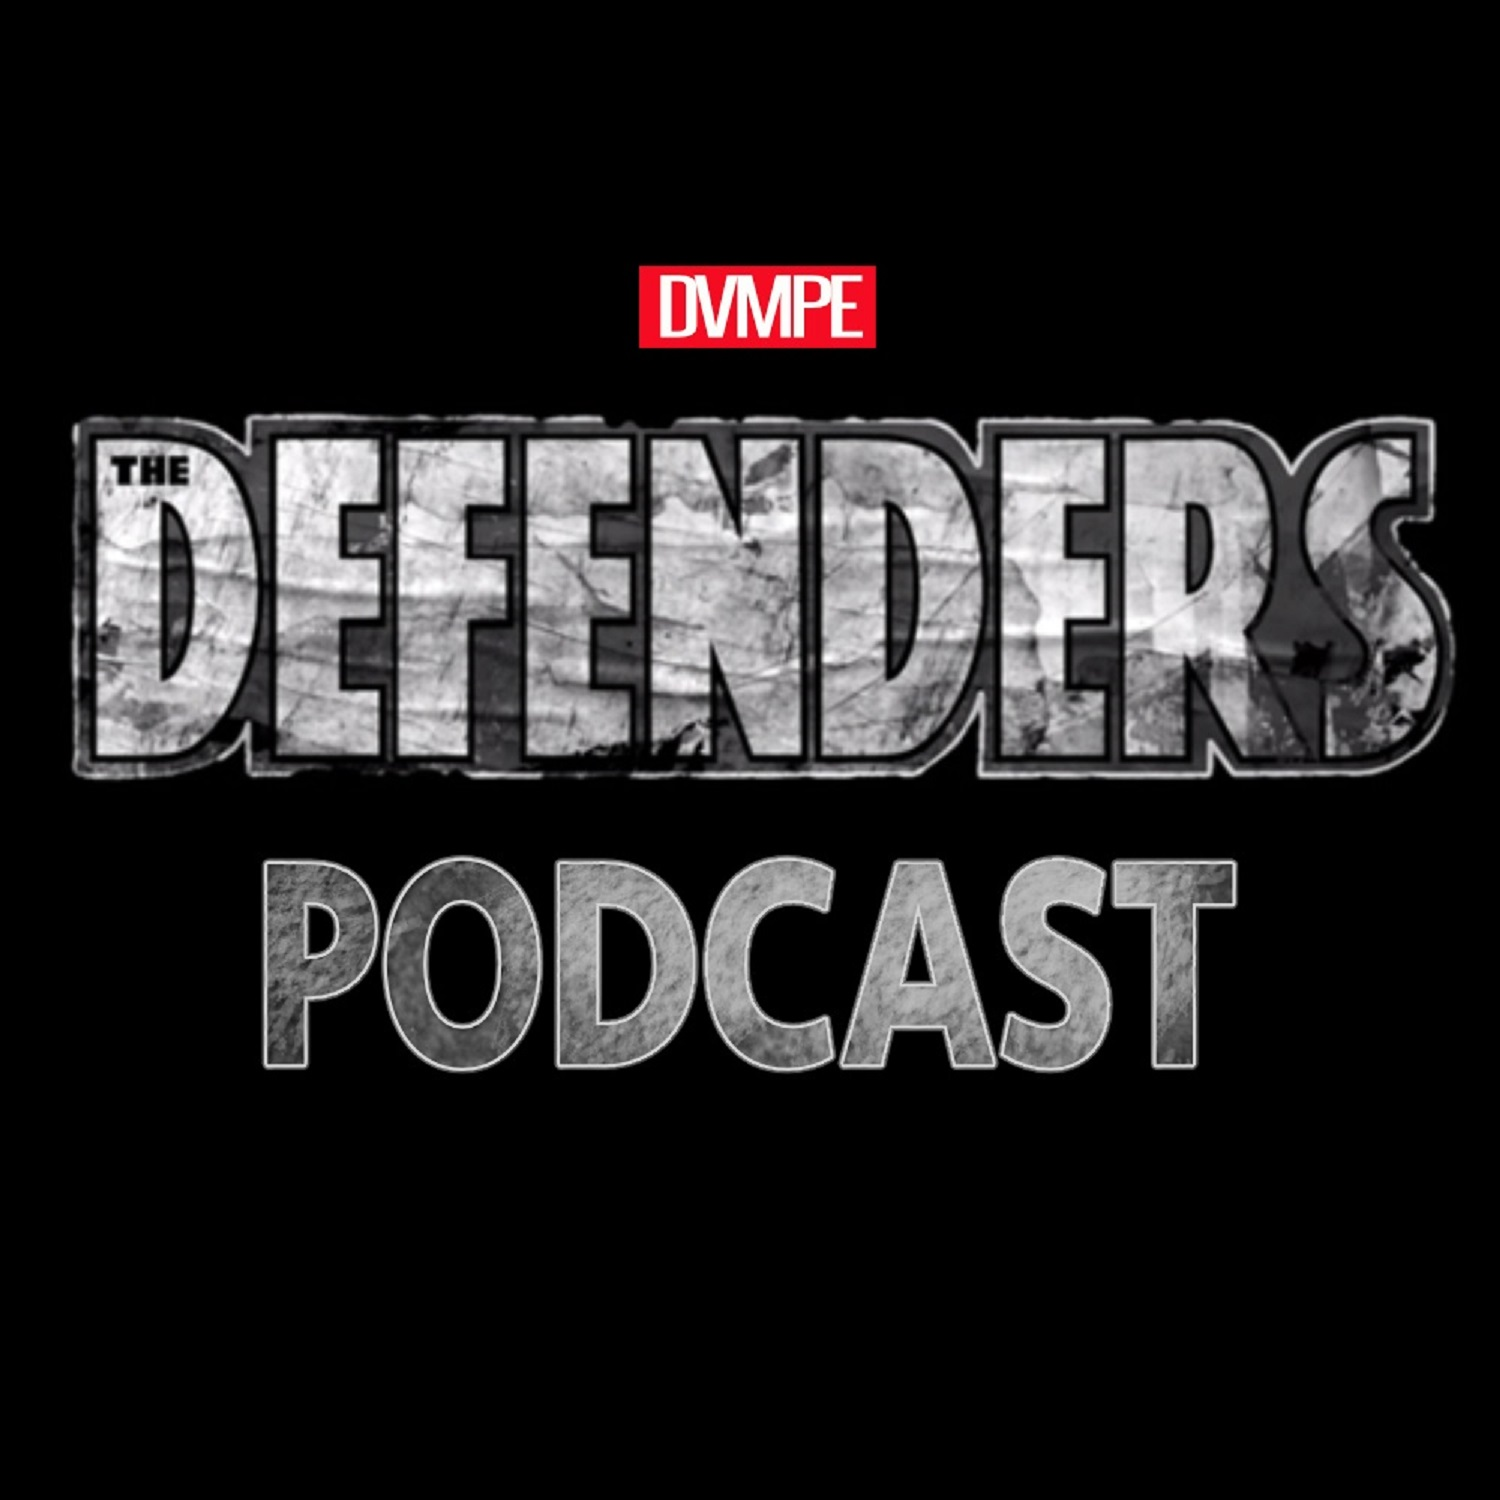 The Defenders Podcast